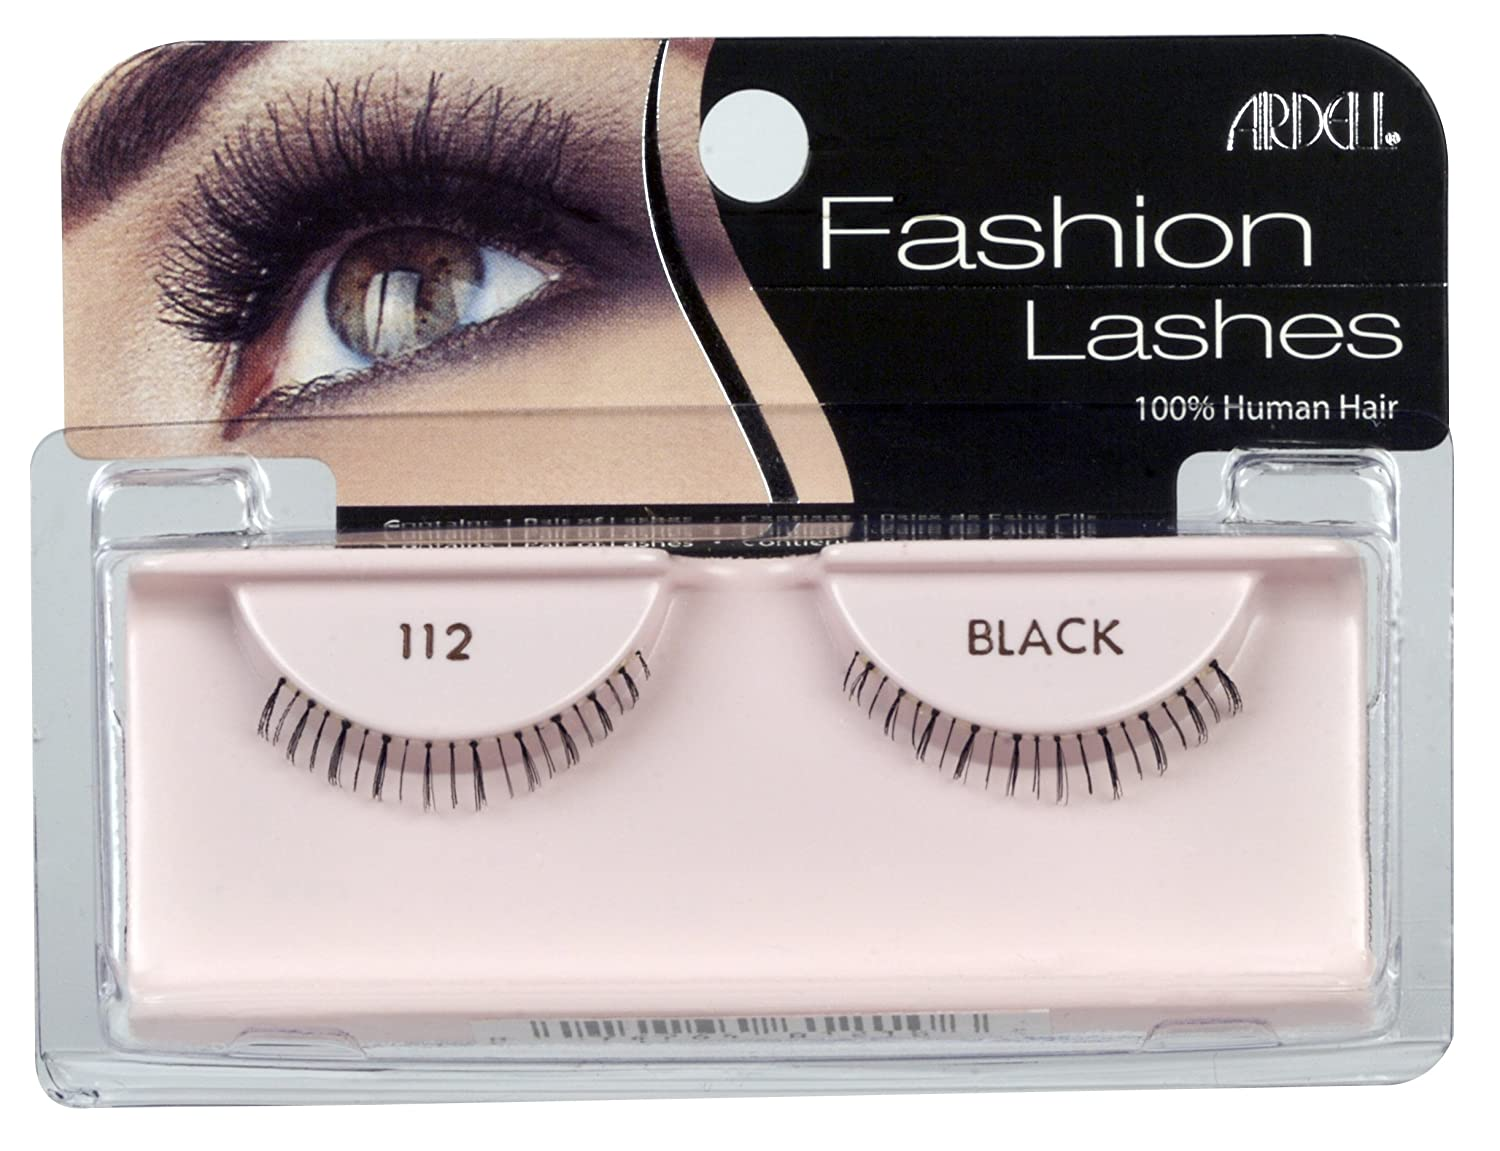 Ardell Fashion Lashes Pair - 112 Lower Lashes (Pack of 4)